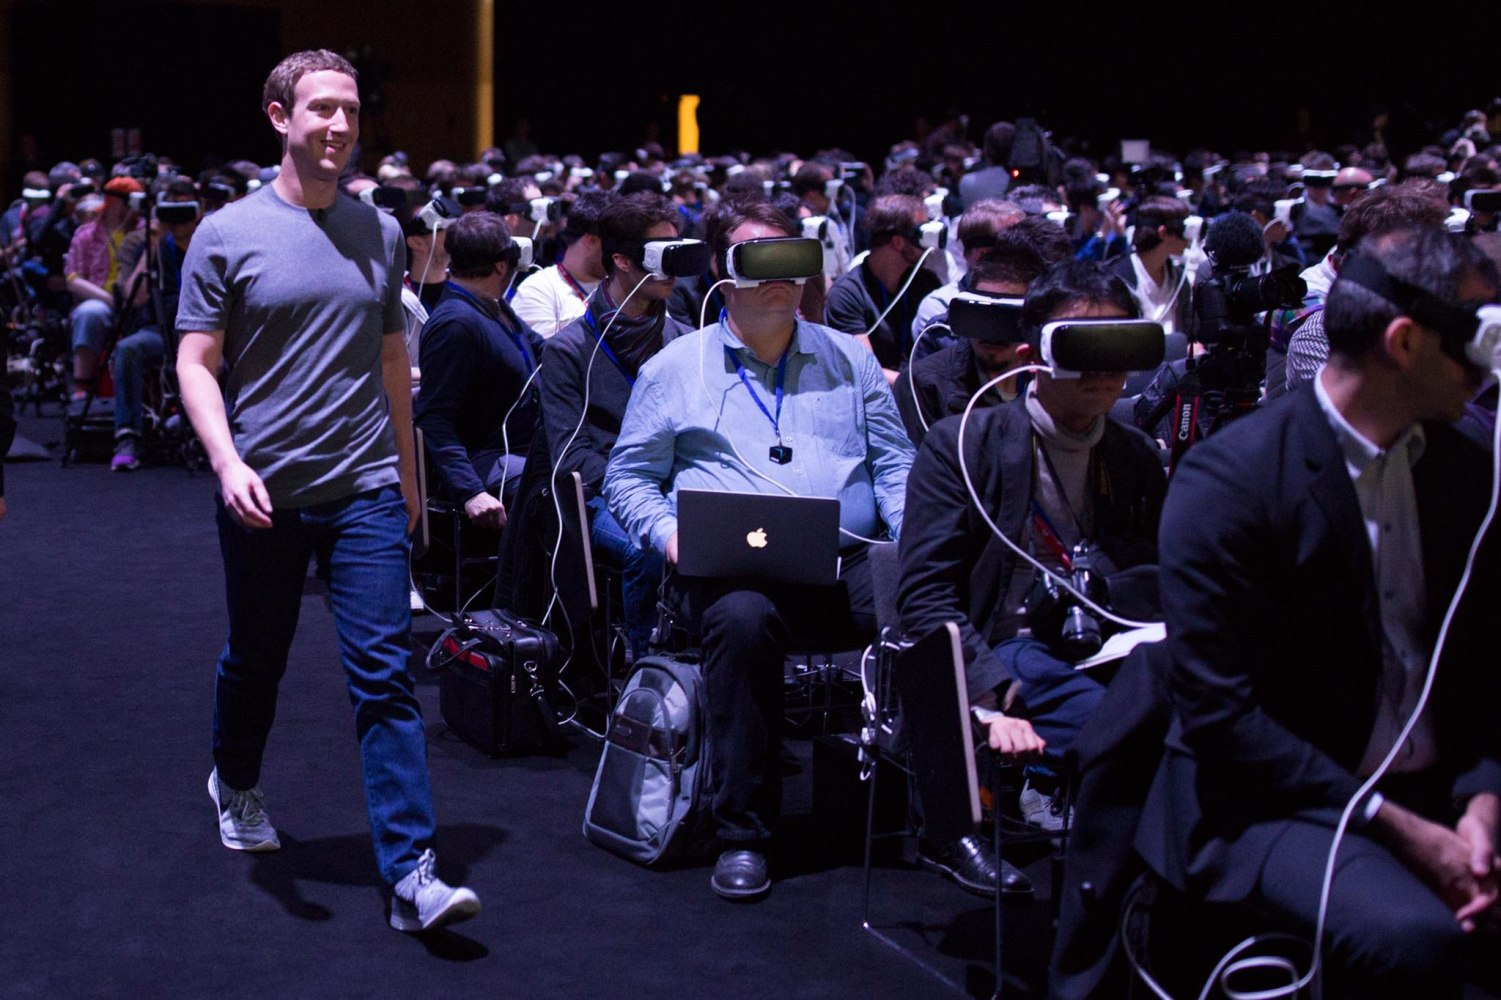 mark zuckerberg, entrance to hall, augmented reality ile ilgili görsel sonucu